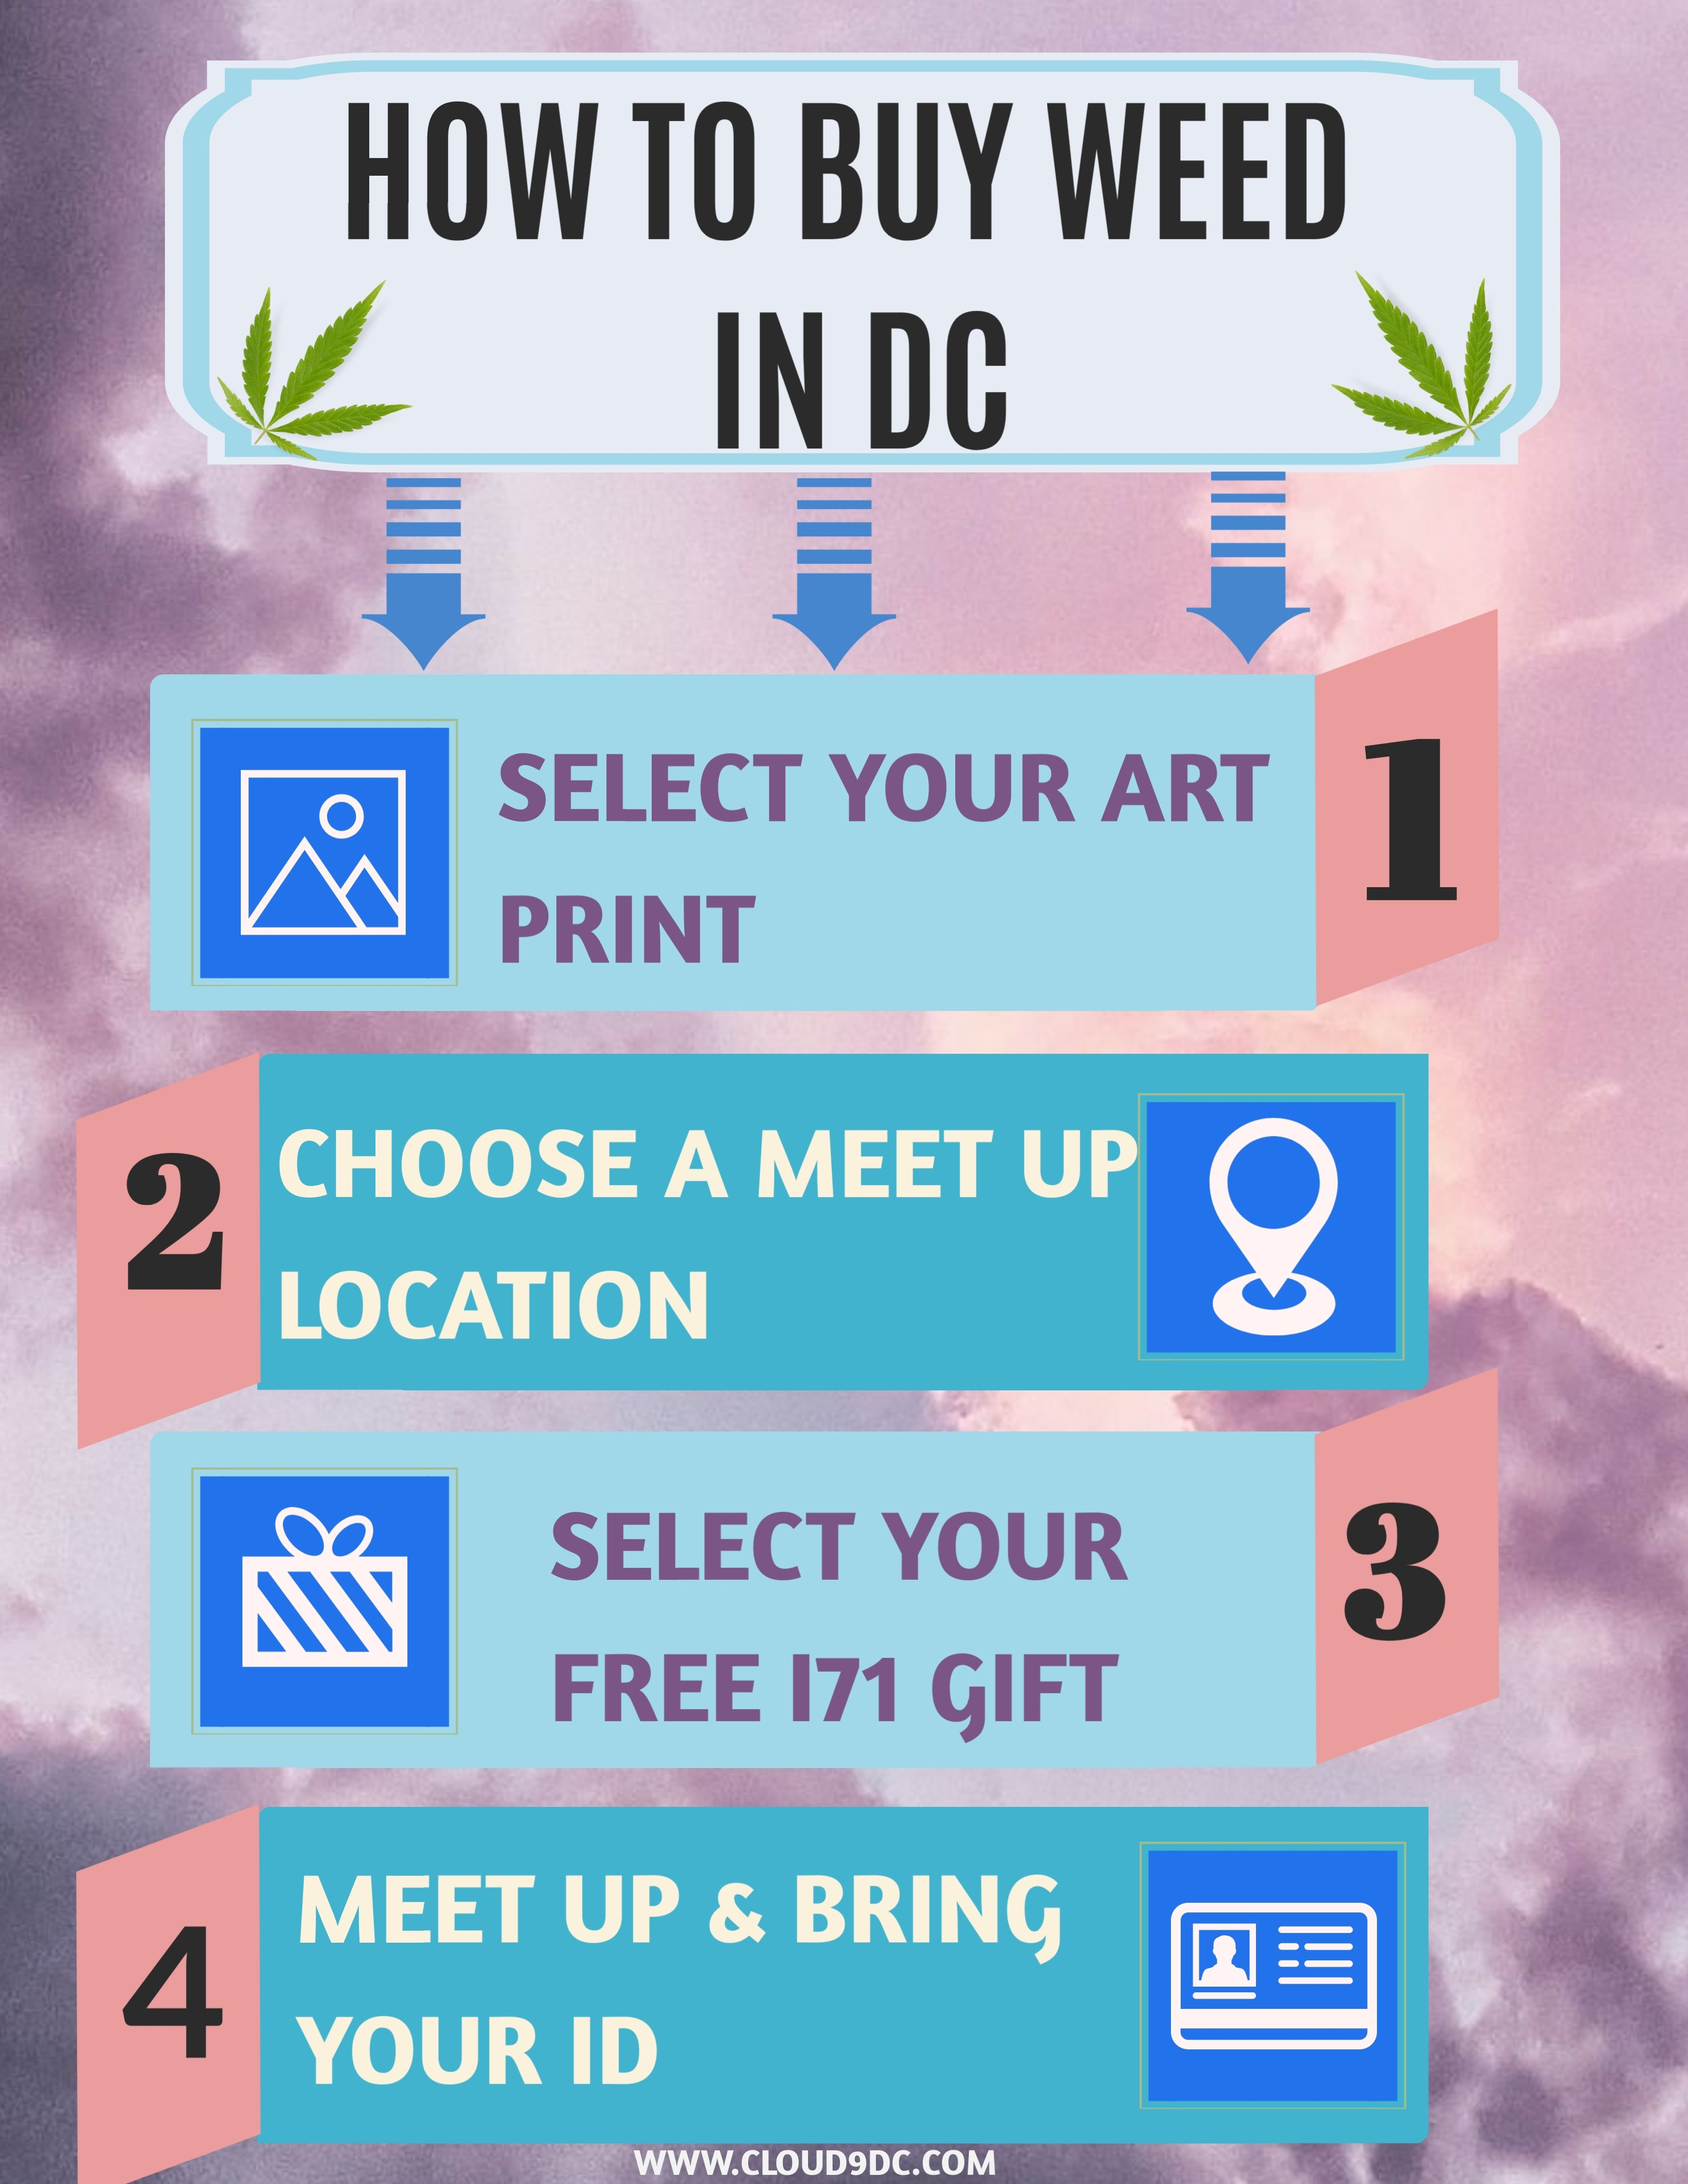 how to order weed in dc during covid19